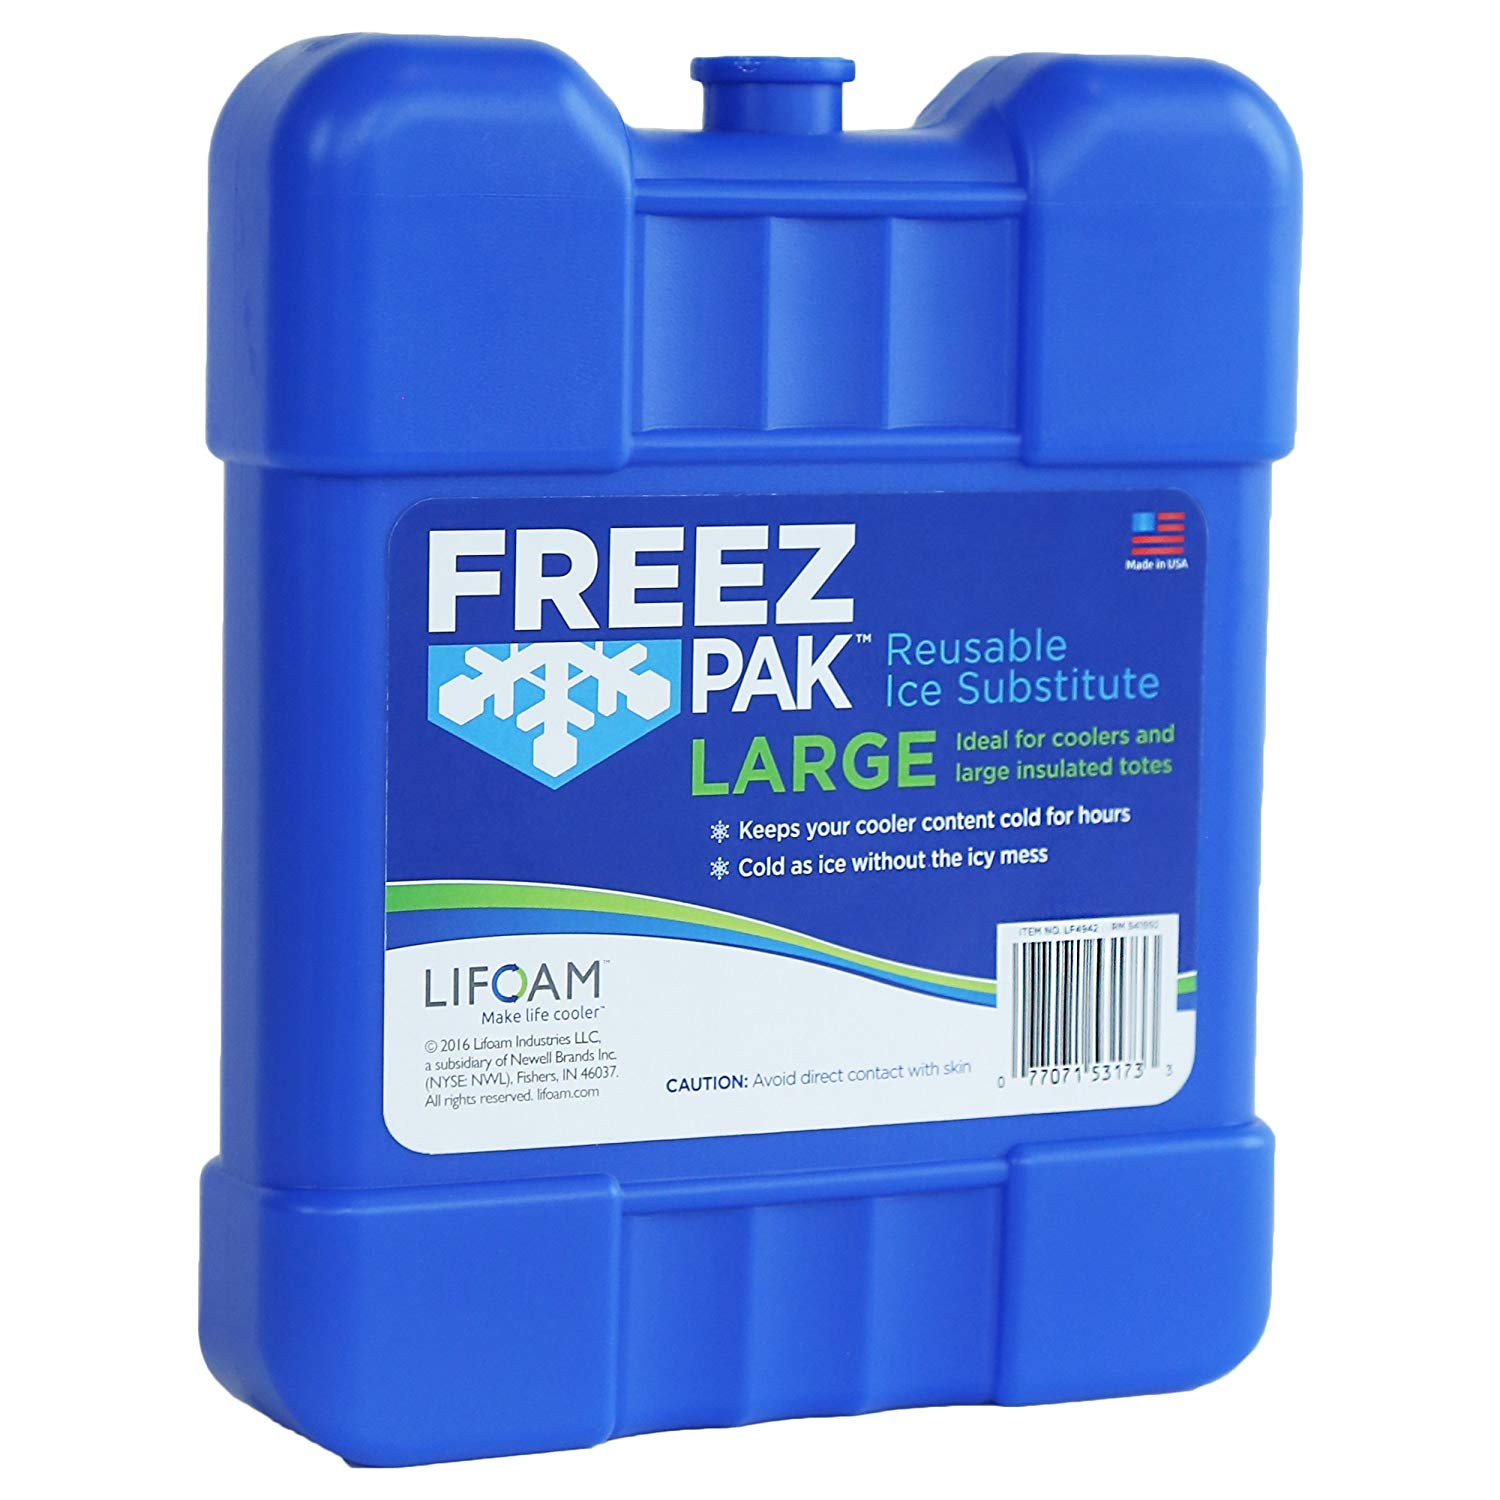 Freez Pak Large Reusable Ice Pack Only $2.94!